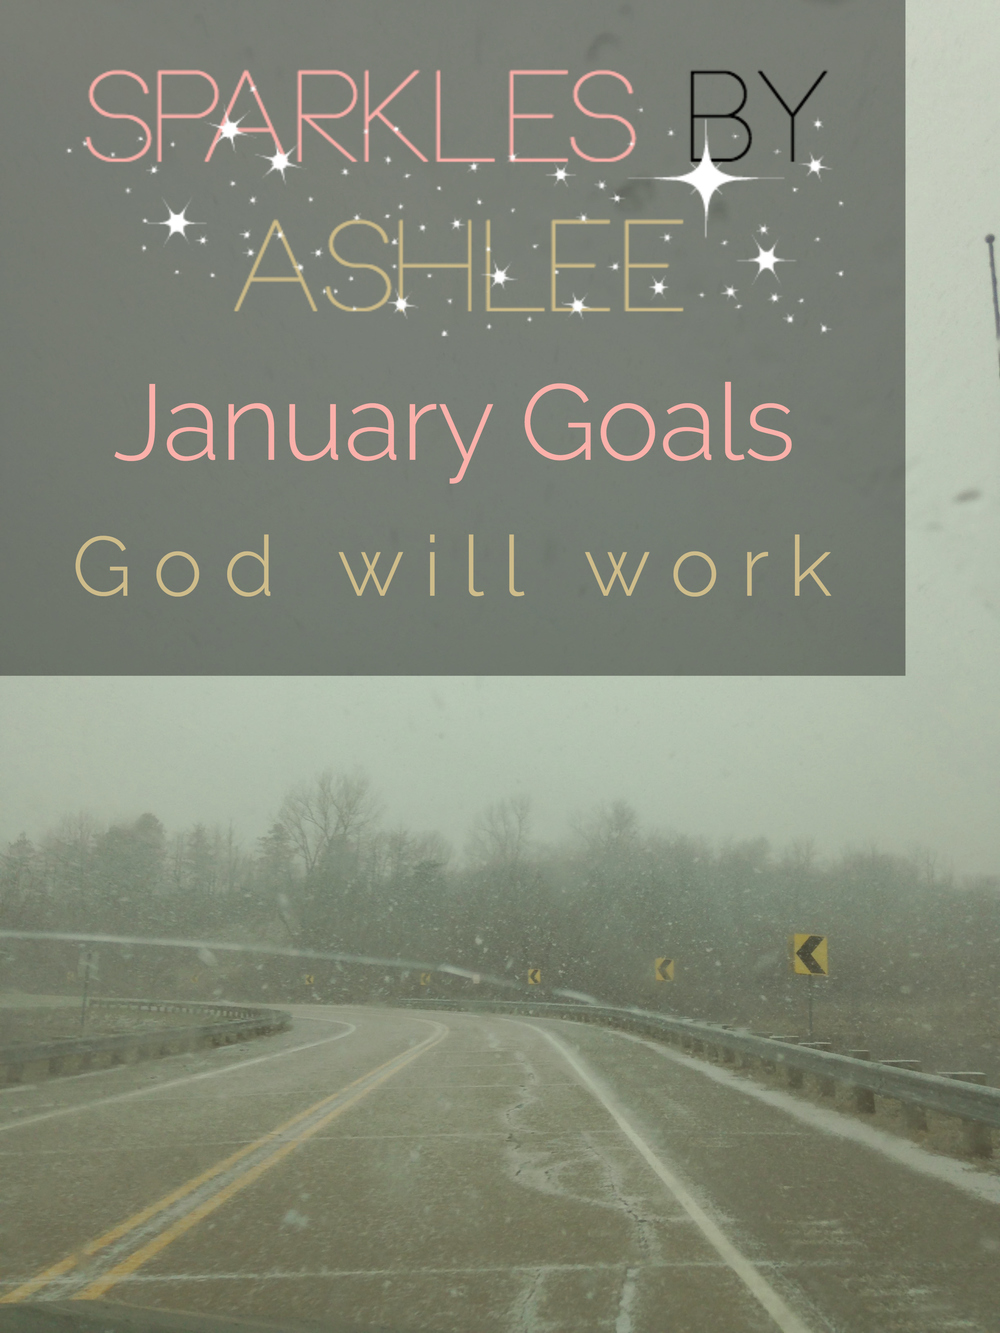 January-Goals-Sparkles-by-Ashlee.jpg